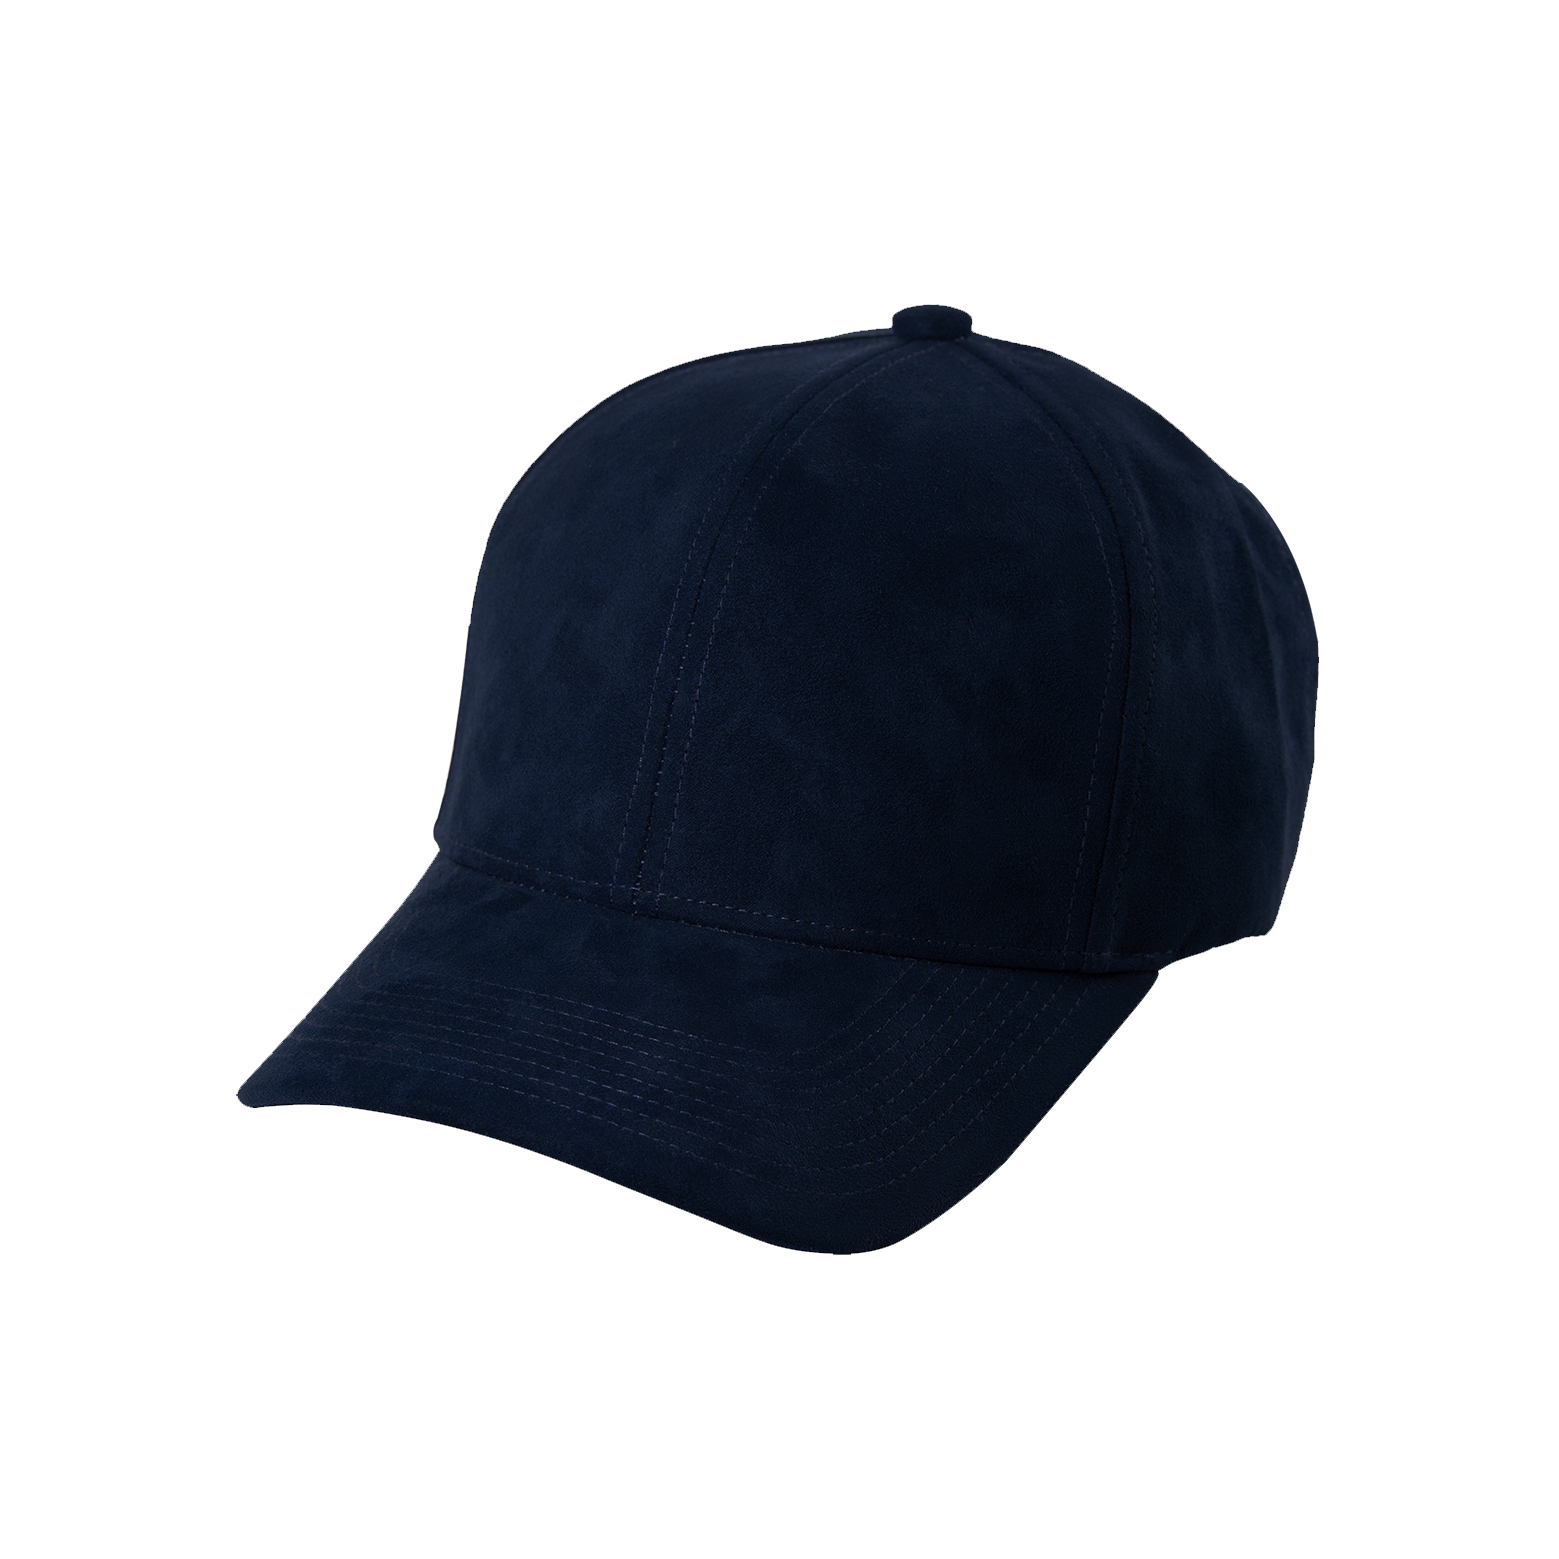 BASEBALL CAP NAVY BLUE SUEDE FRONT SIDE